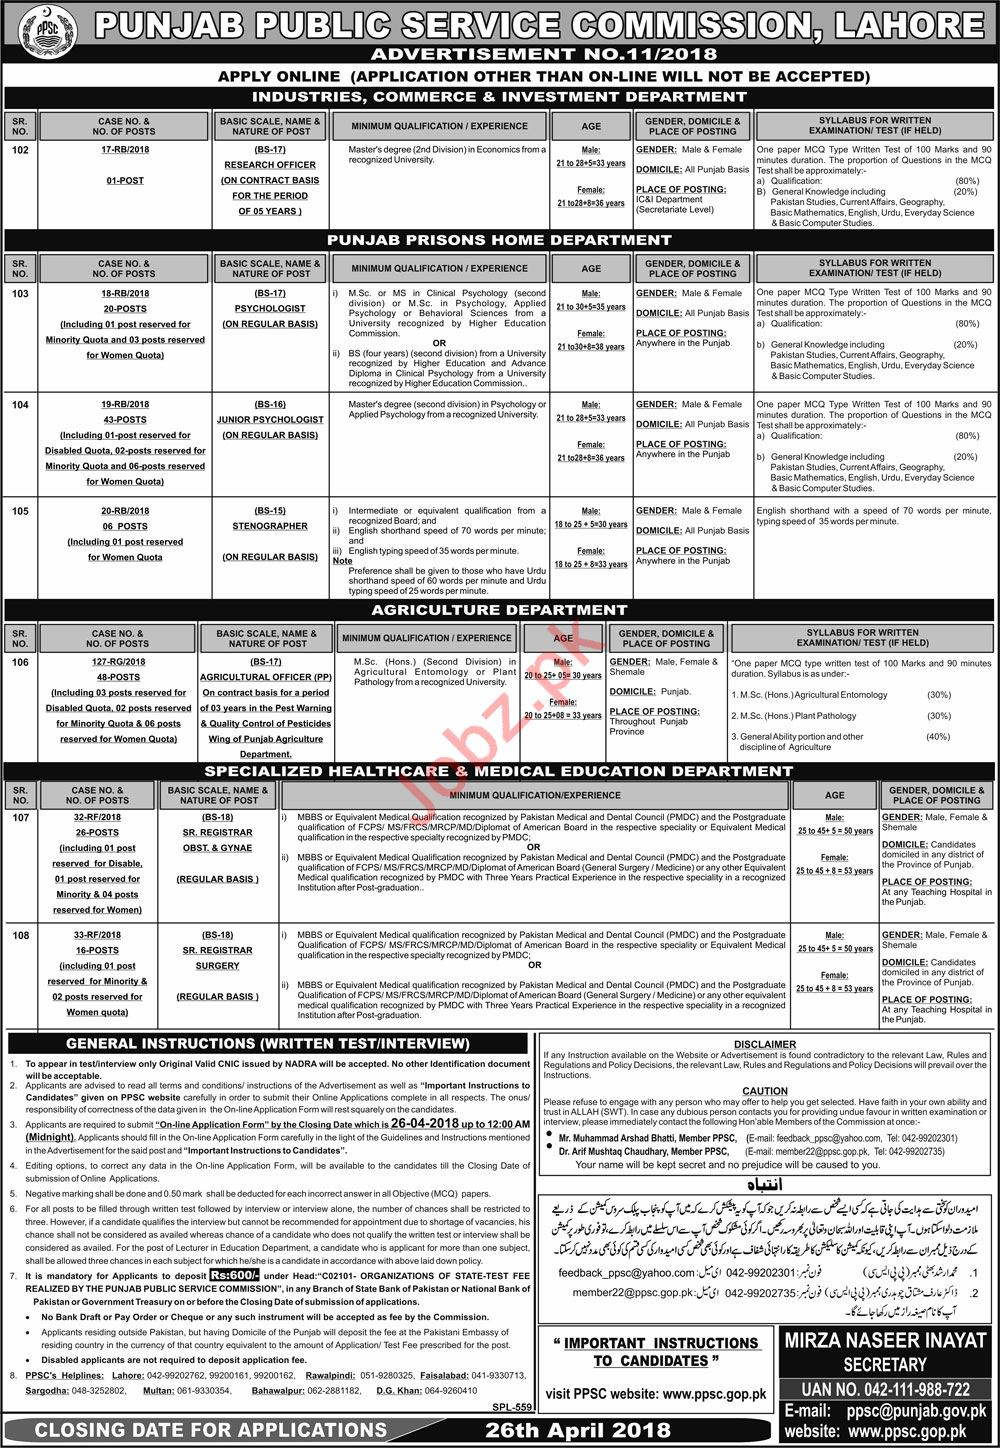 PPSC Punjab Prisons Home Department Jobs 2018